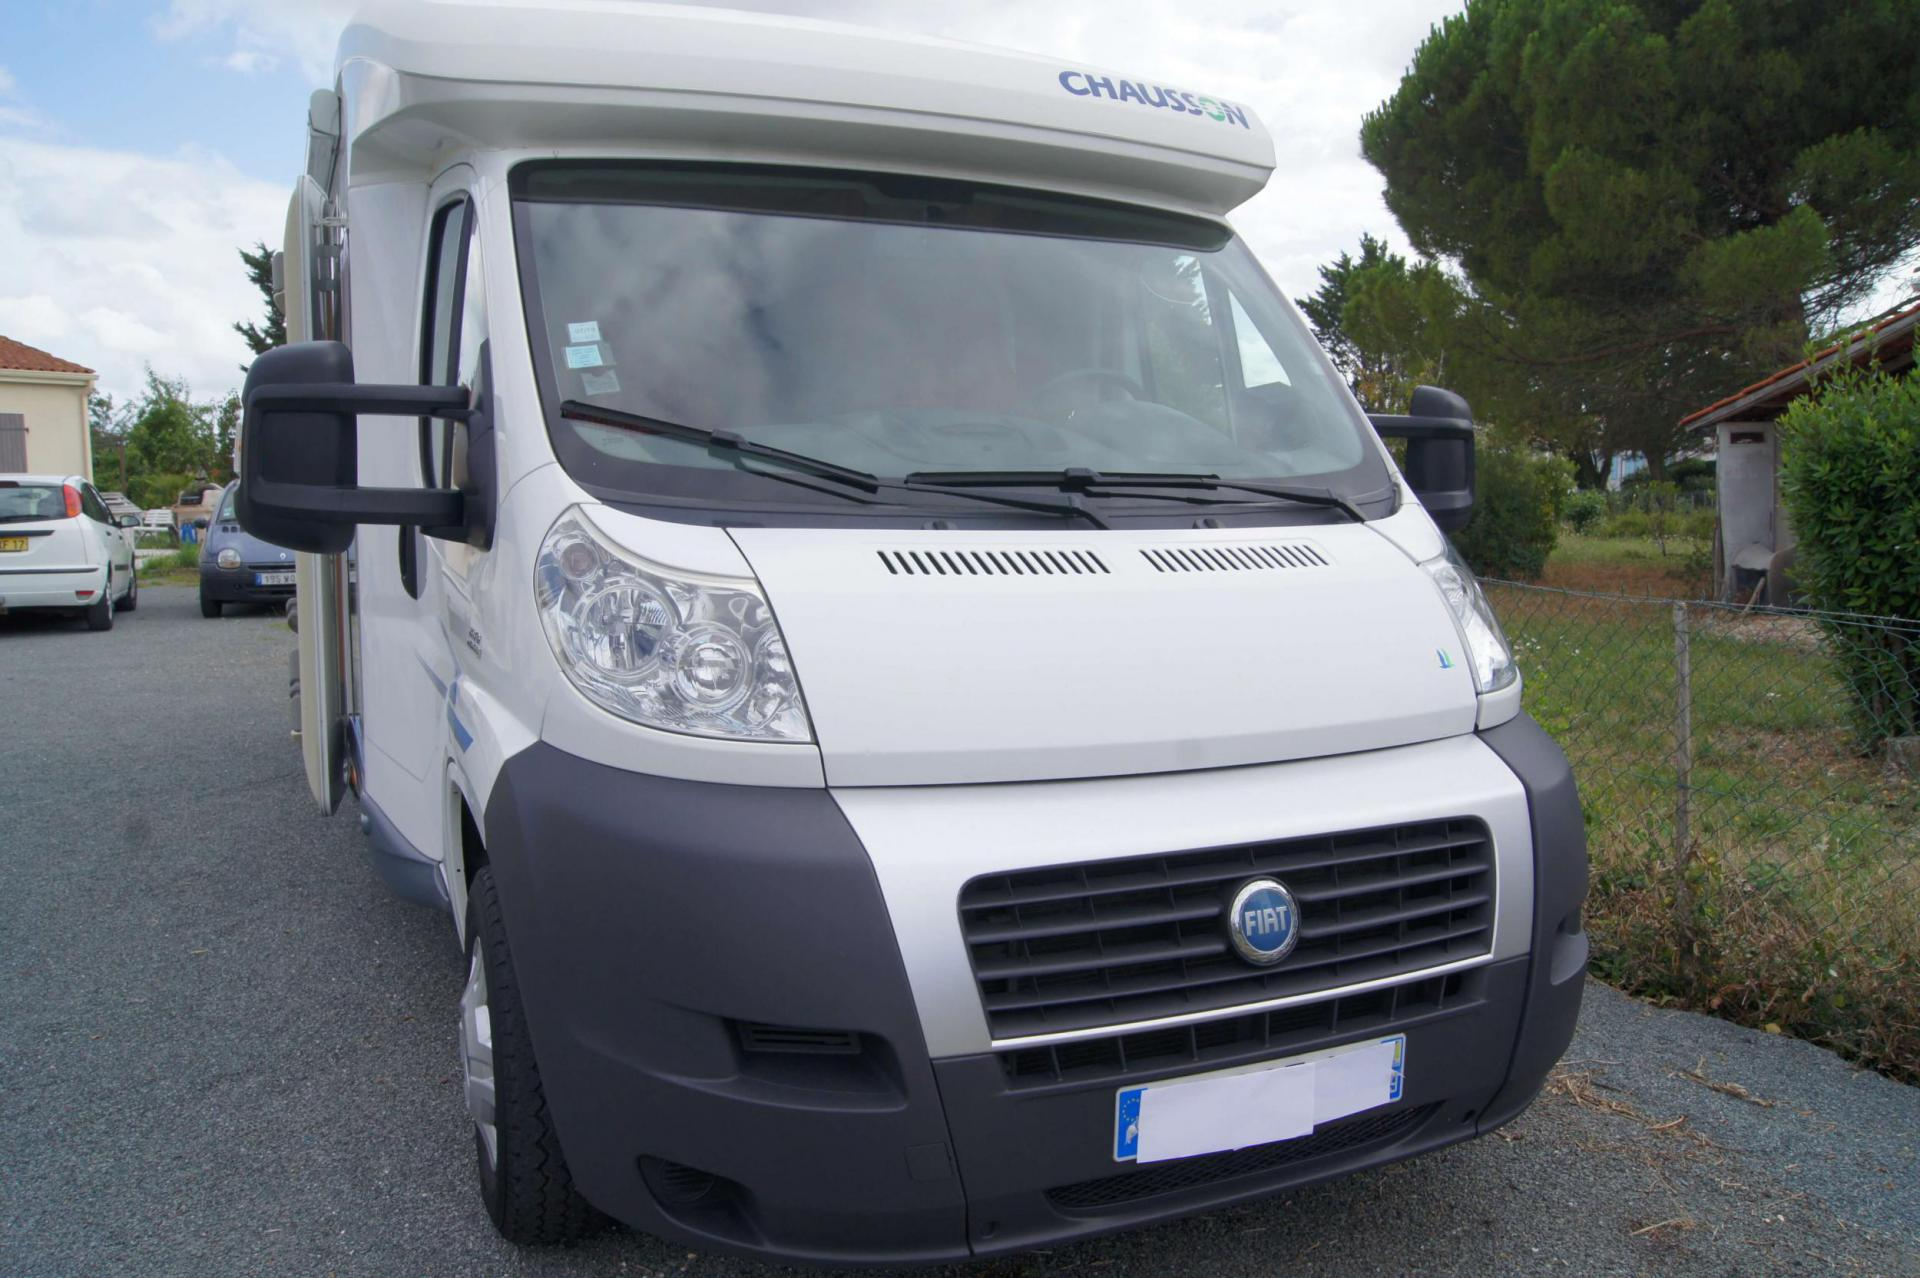 camping-car CHAUSSON FLASH 08 FIAT DUCATO